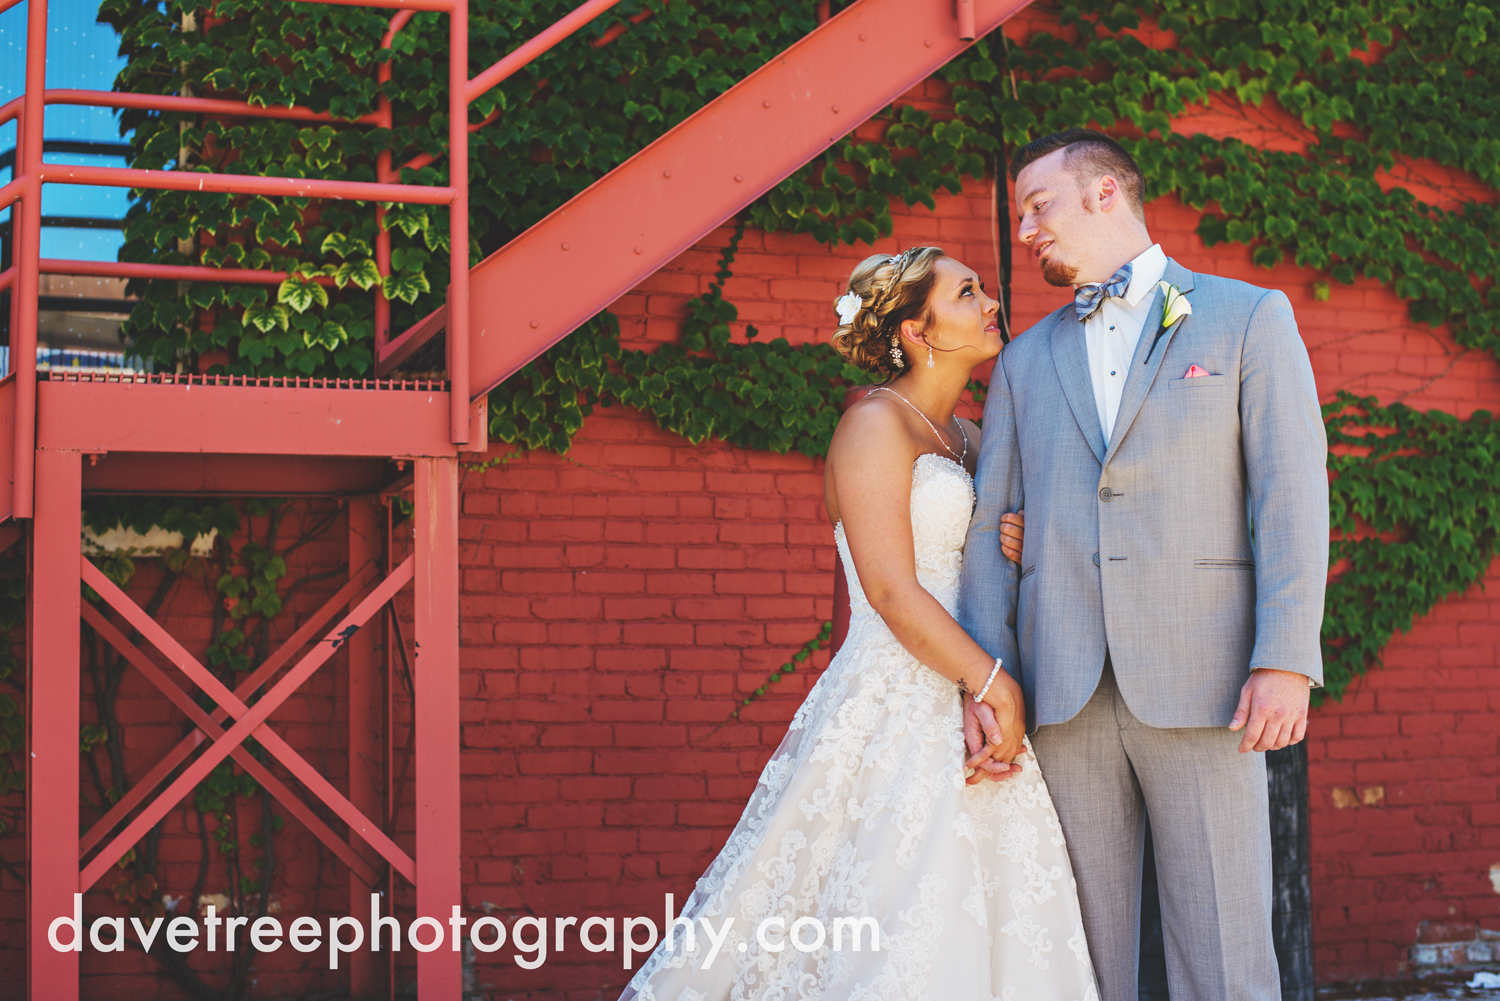 veranda_wedding_photographer_st_joseph_wedding_30.jpg